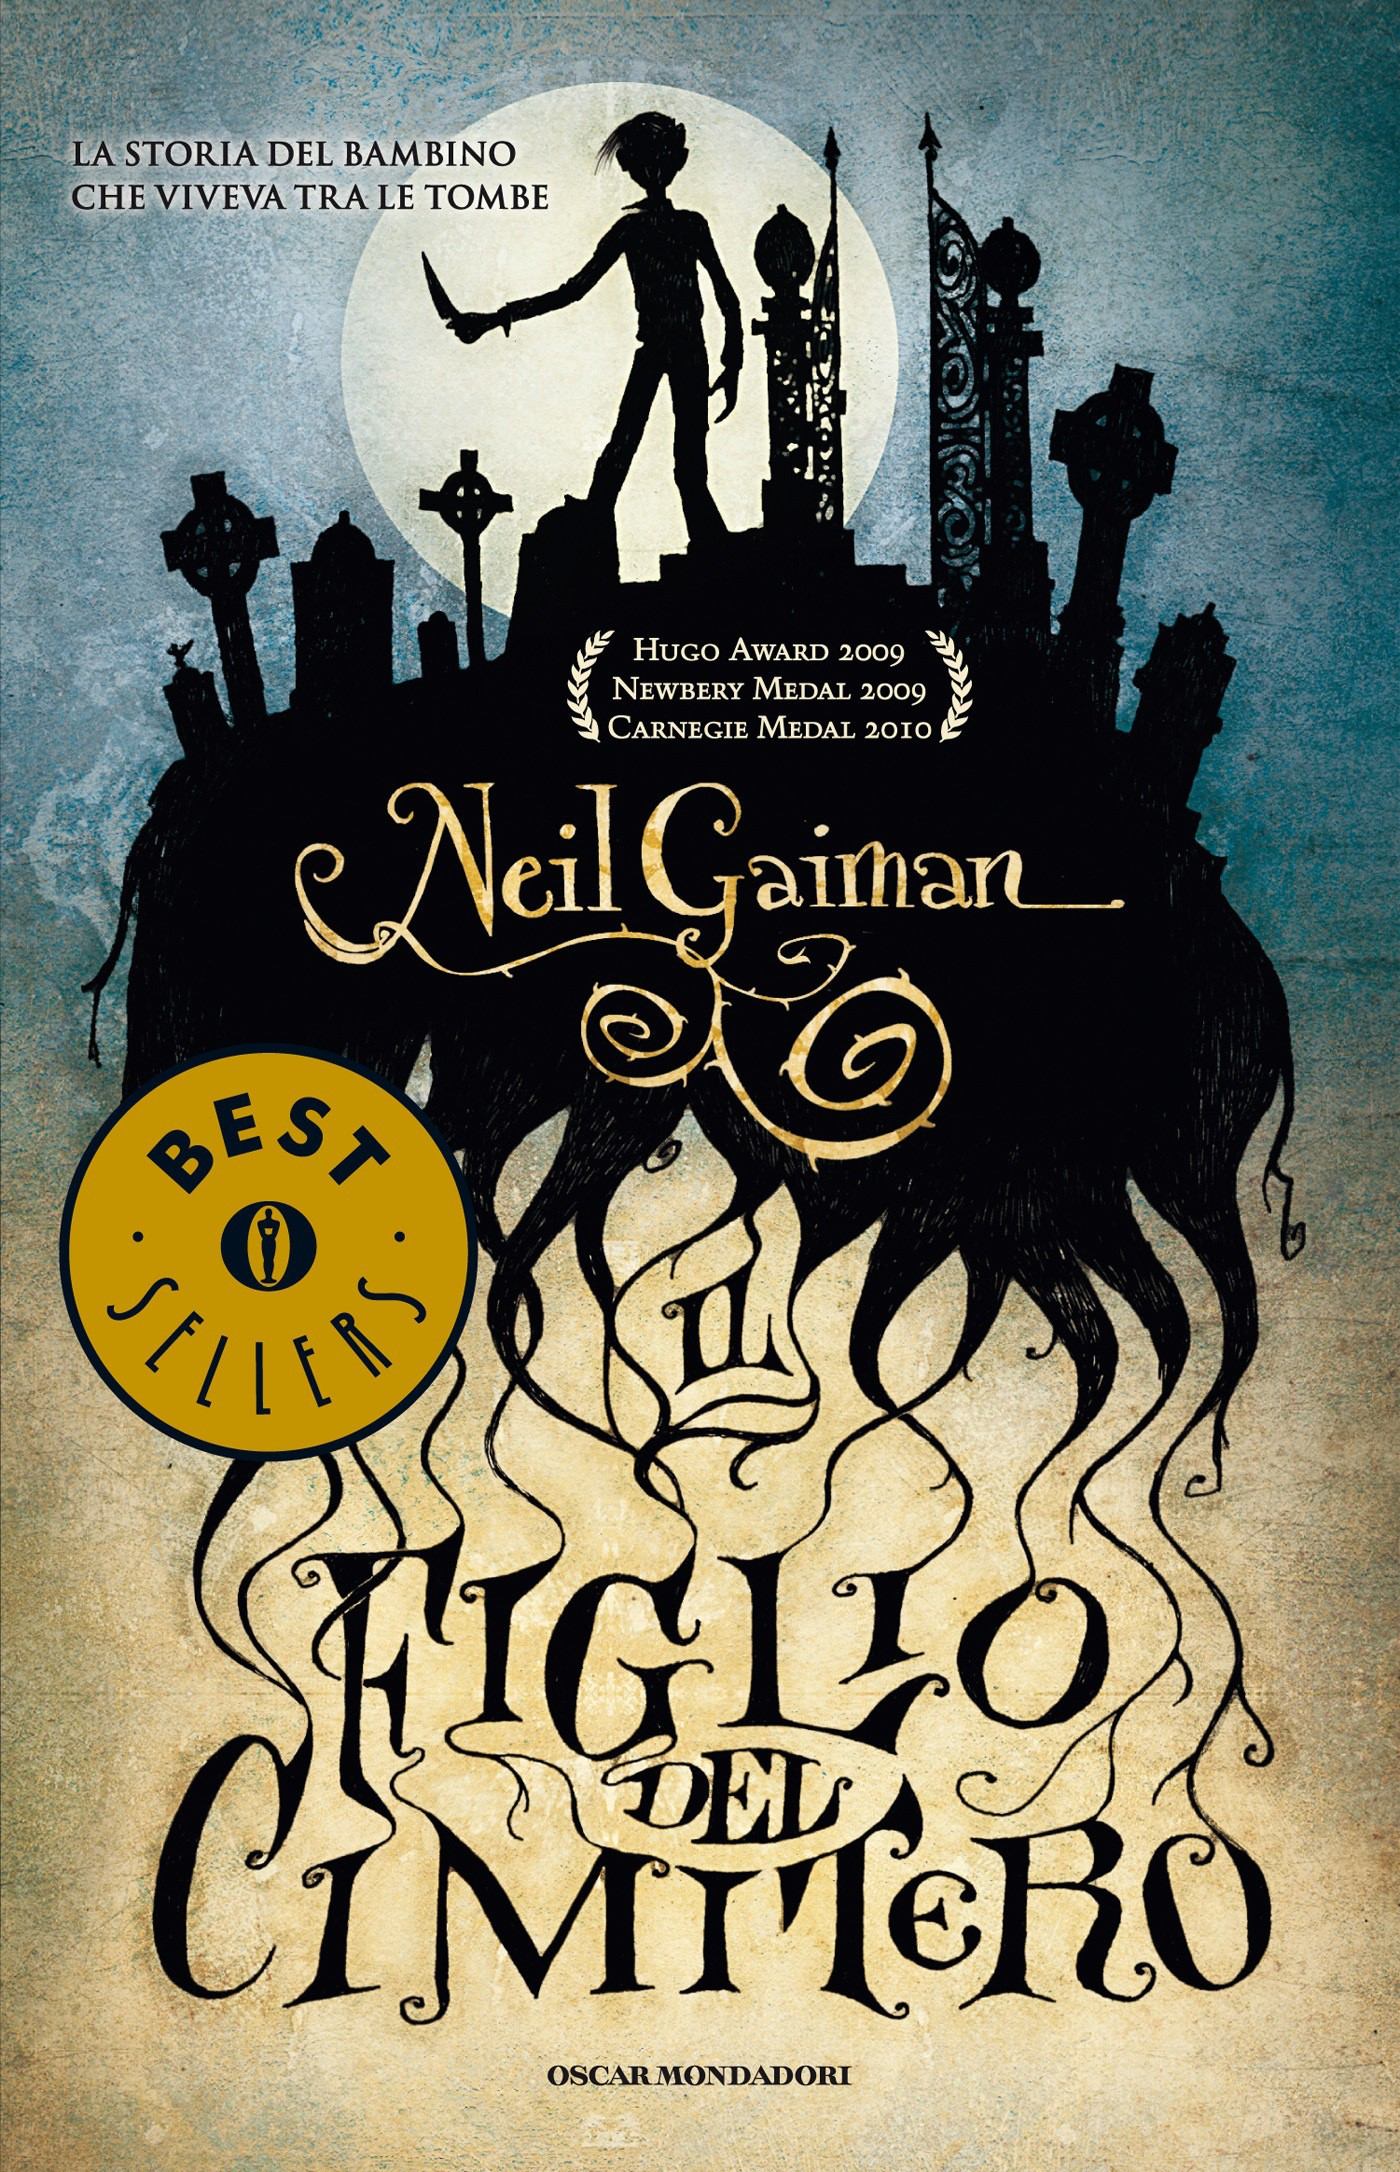 http://www.amazon.it/figlio-del-cimitero-Neil-Gaiman/dp/8804601736/ref=tmm_pap_title_0?ie=UTF8&qid=1418154963&sr=1-1